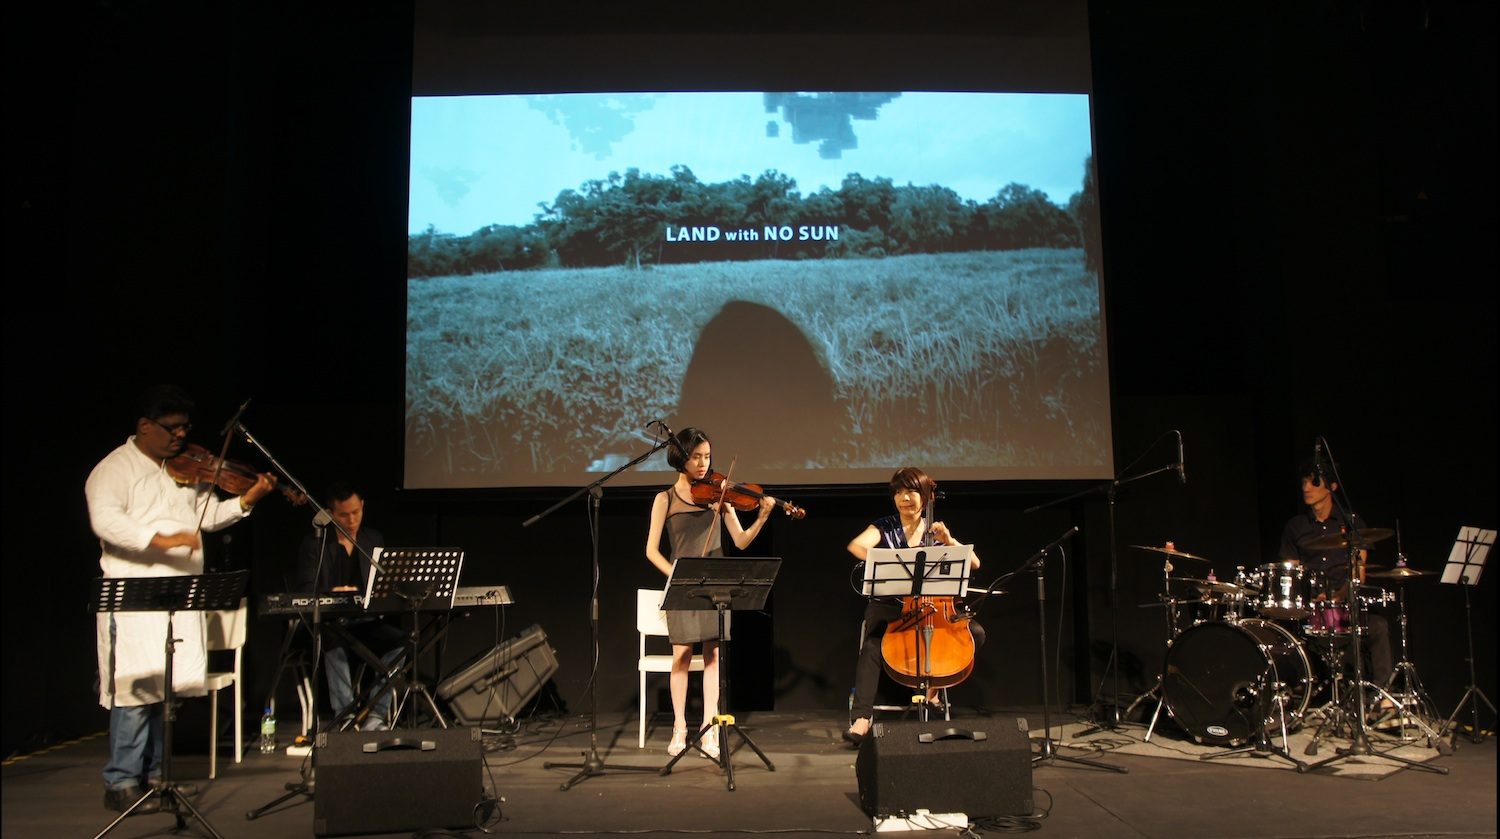 LAND with NO SUN : Whispers of the Wind performance at Titian Budaya Festival 2015 in Publika, Kuala Lumpur